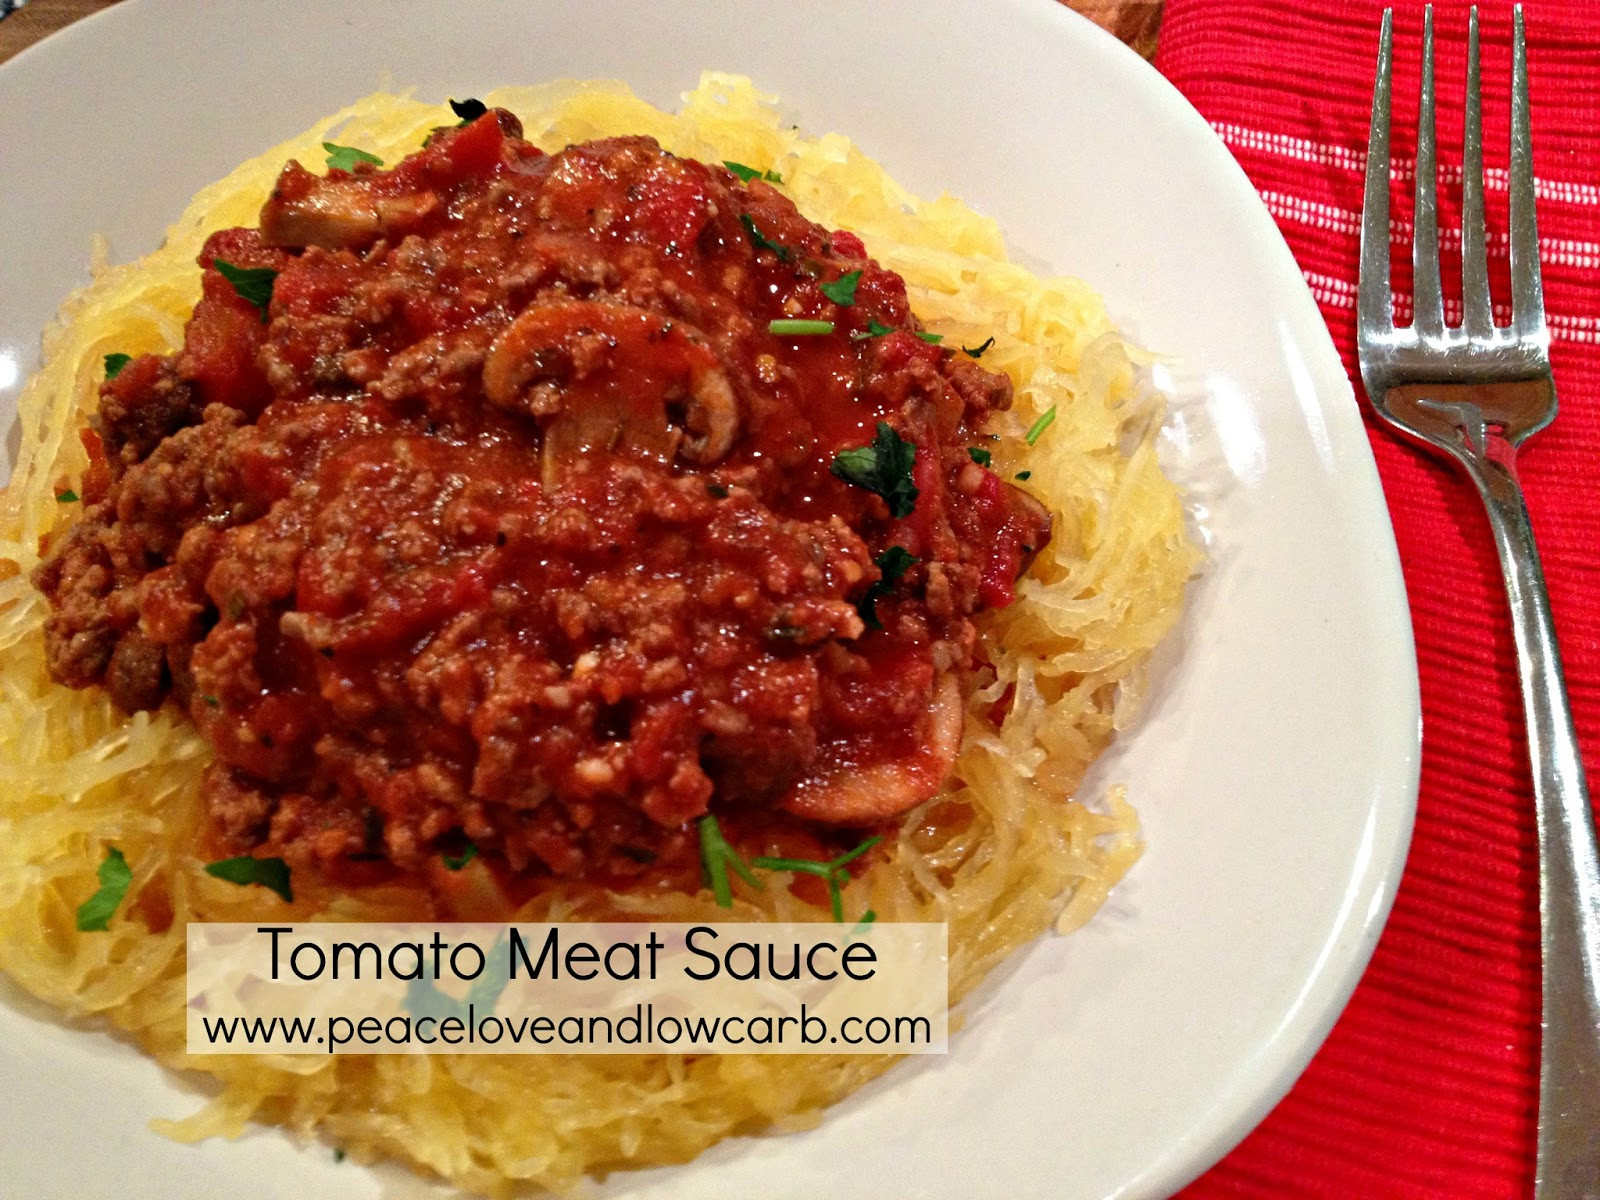 Carbs In Tomato Sauce  Tomato Meat Sauce Recipe and my new Spirelli Spiral Slicer